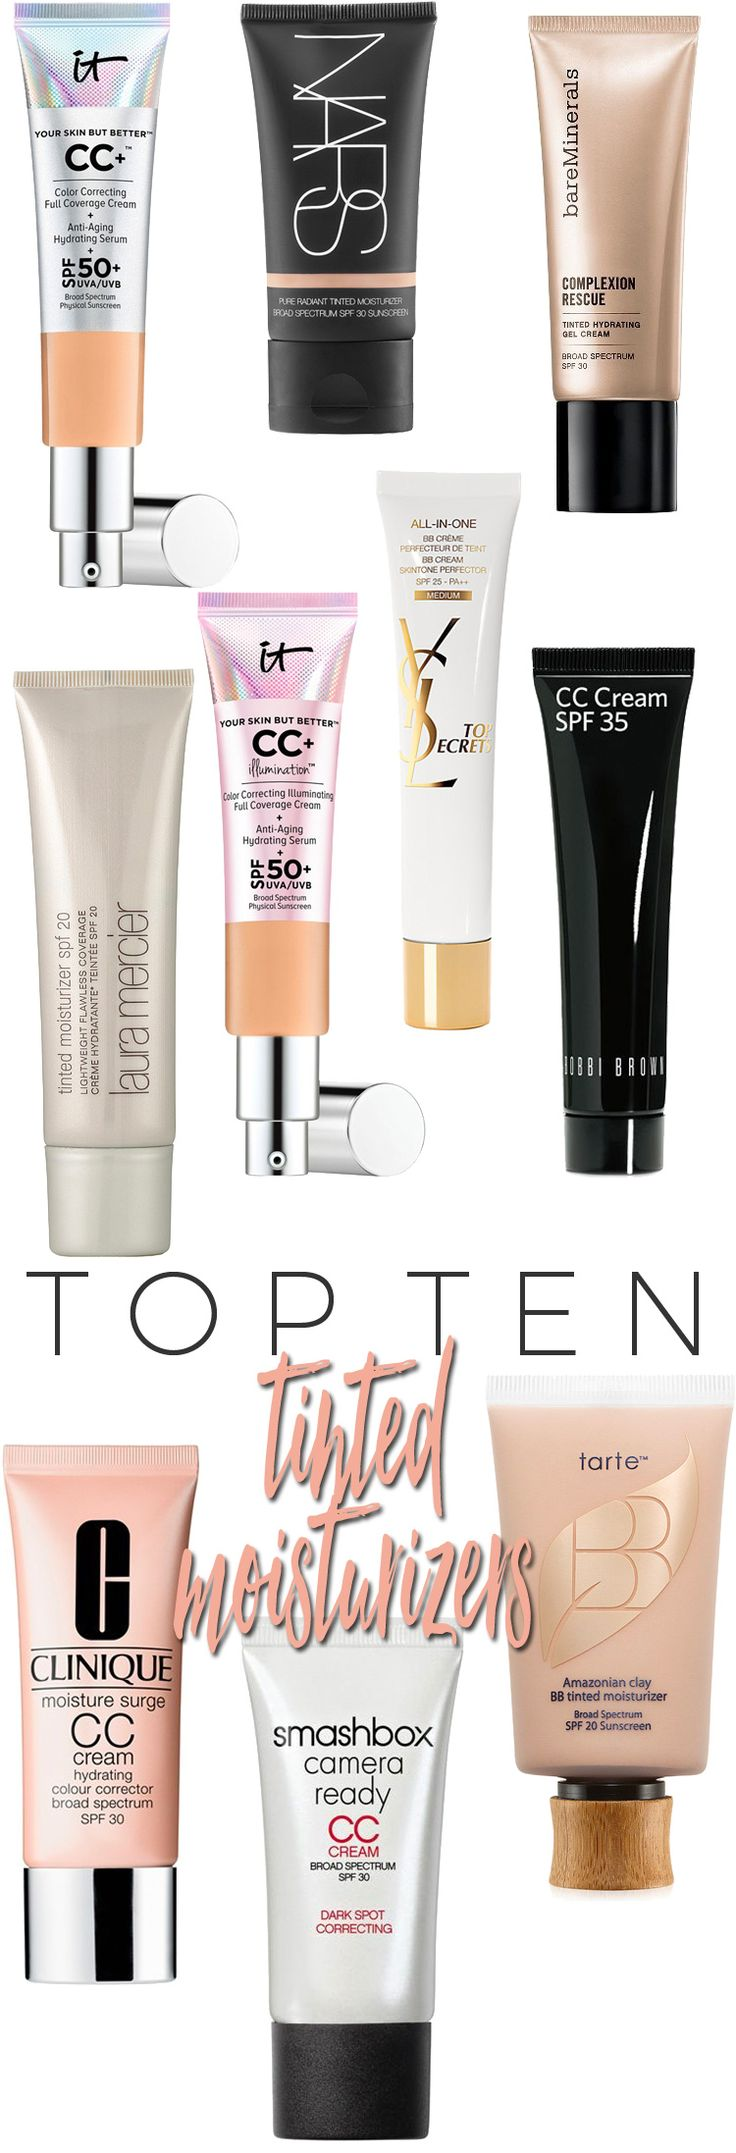 Top 10 Tinted Moisturizers for Summer.